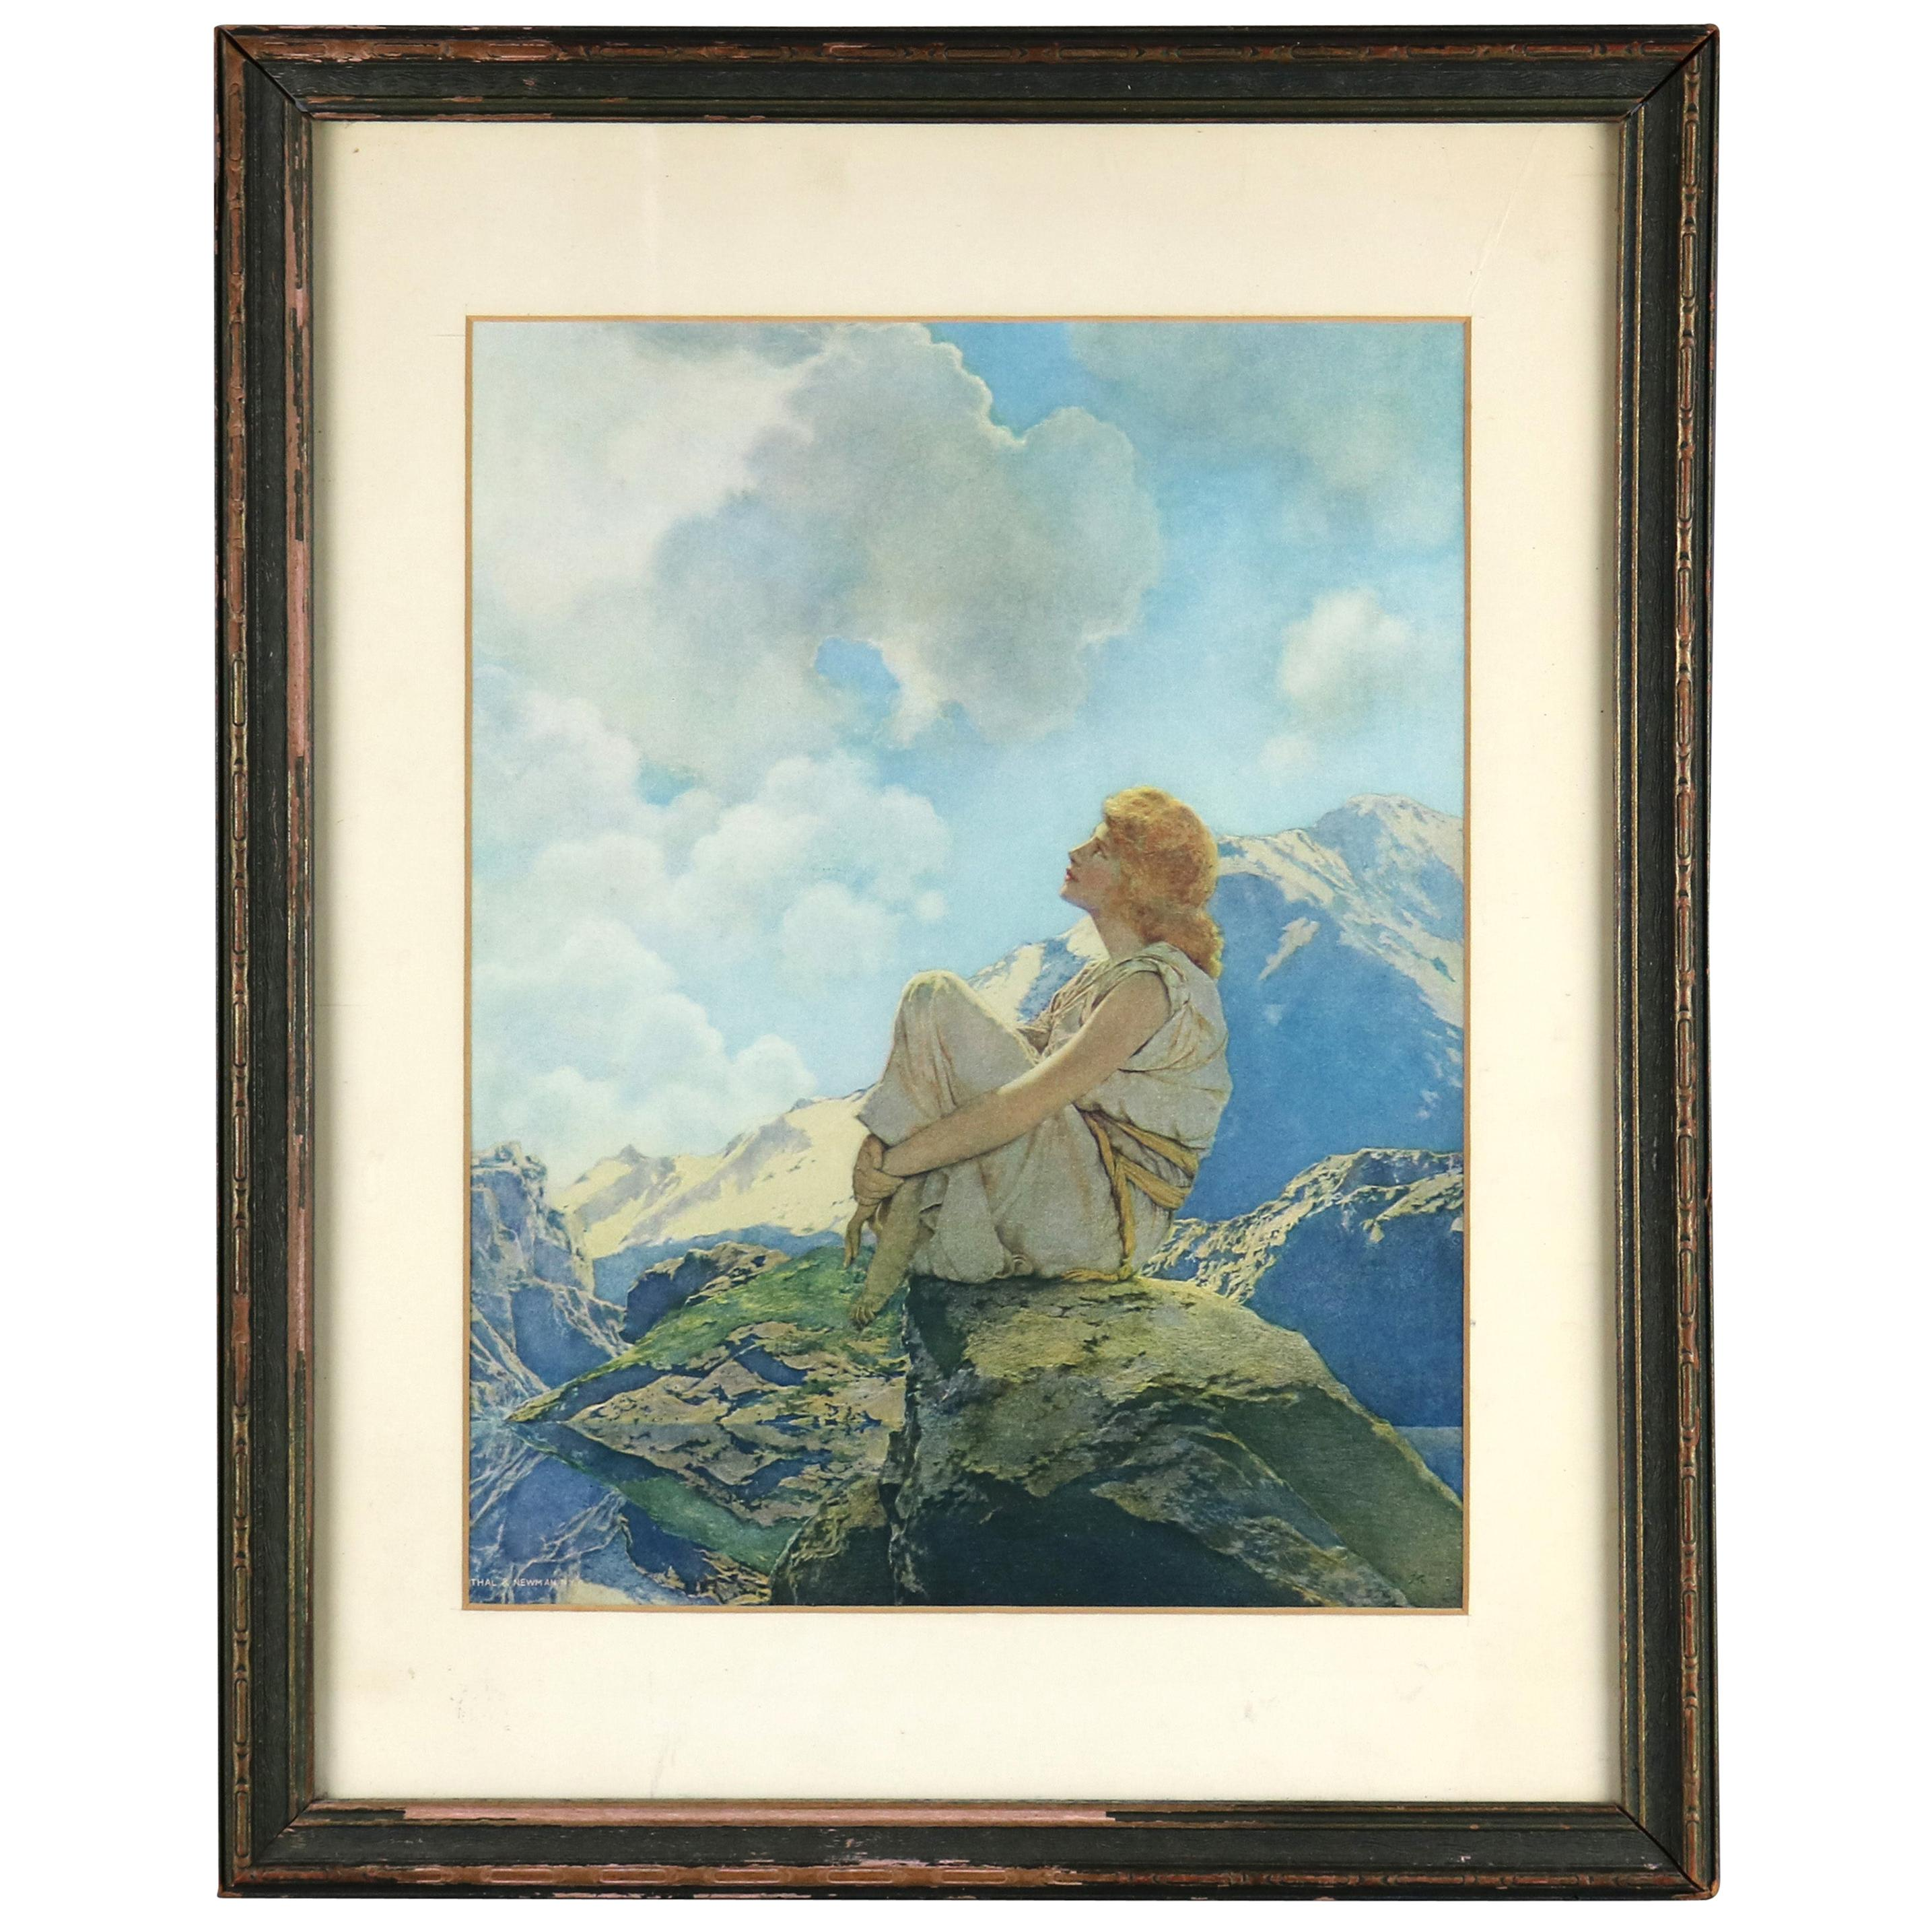 Art Deco Antique Print 'Morning' After Original by Maxfield Parrish, Framed